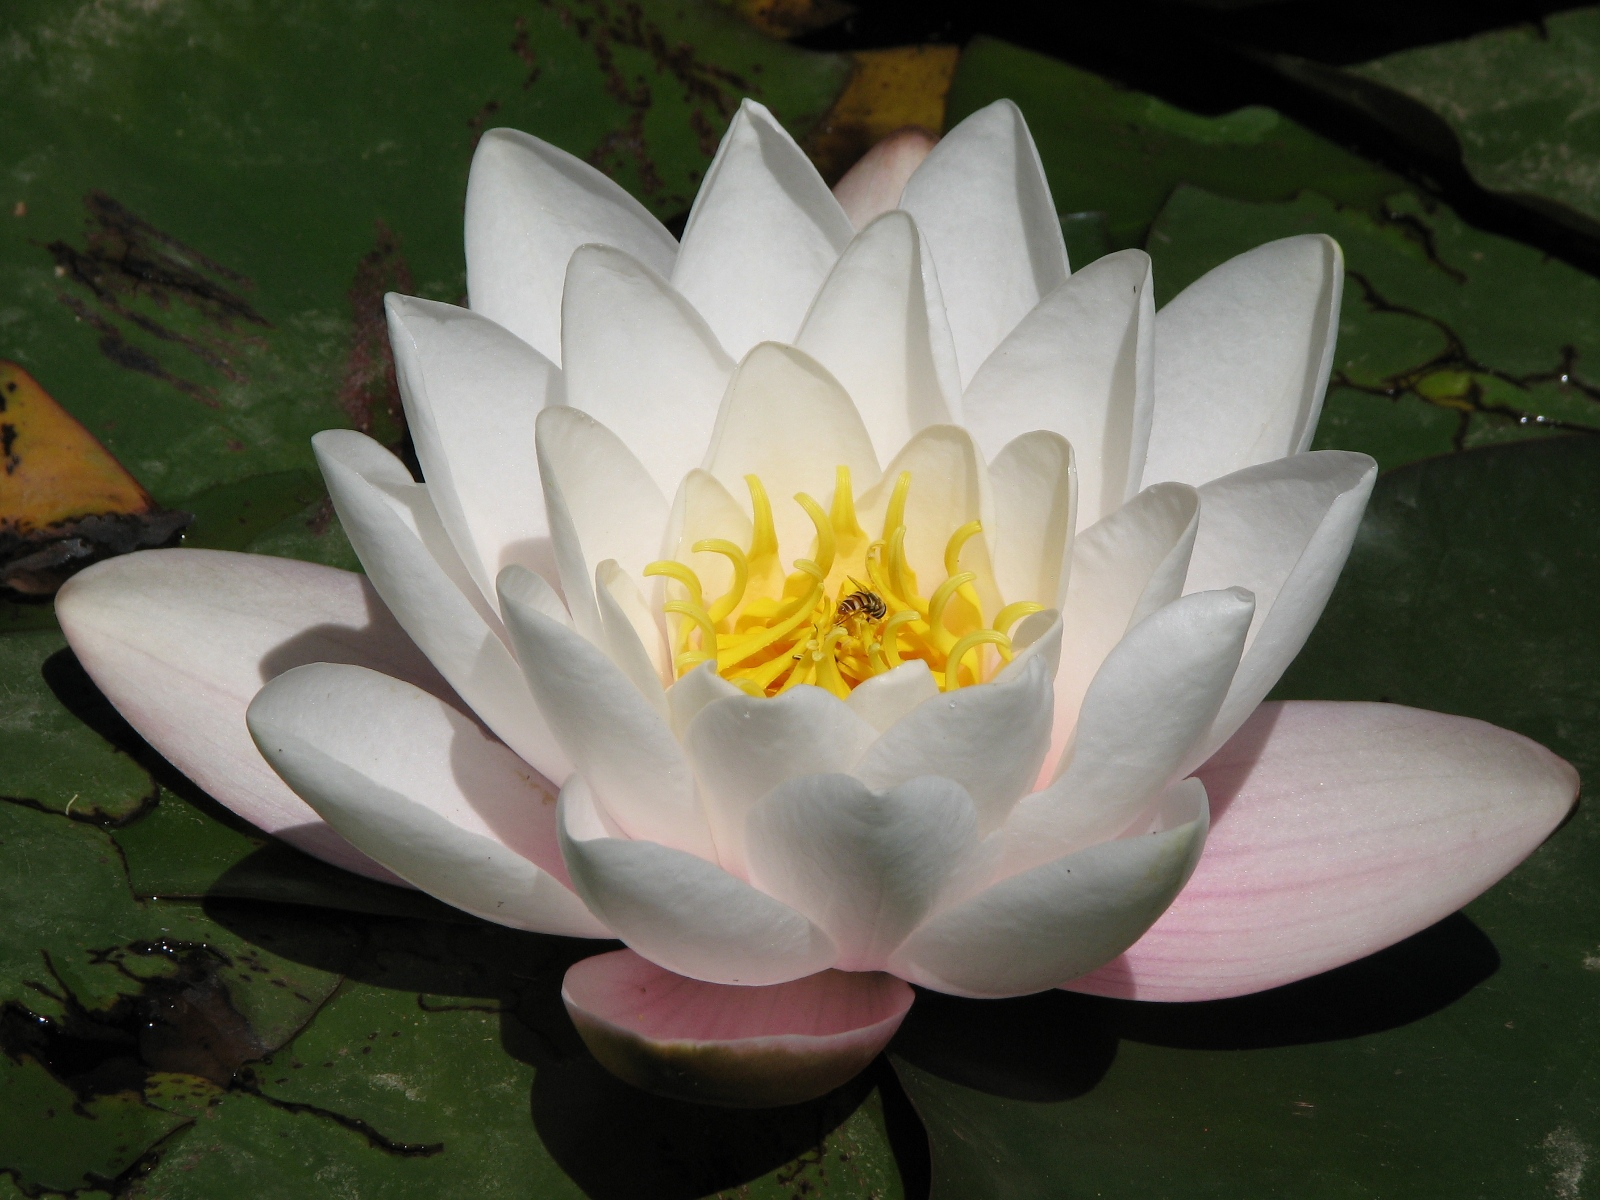 Beautiful new hd wallpapers of lotus flowers full free